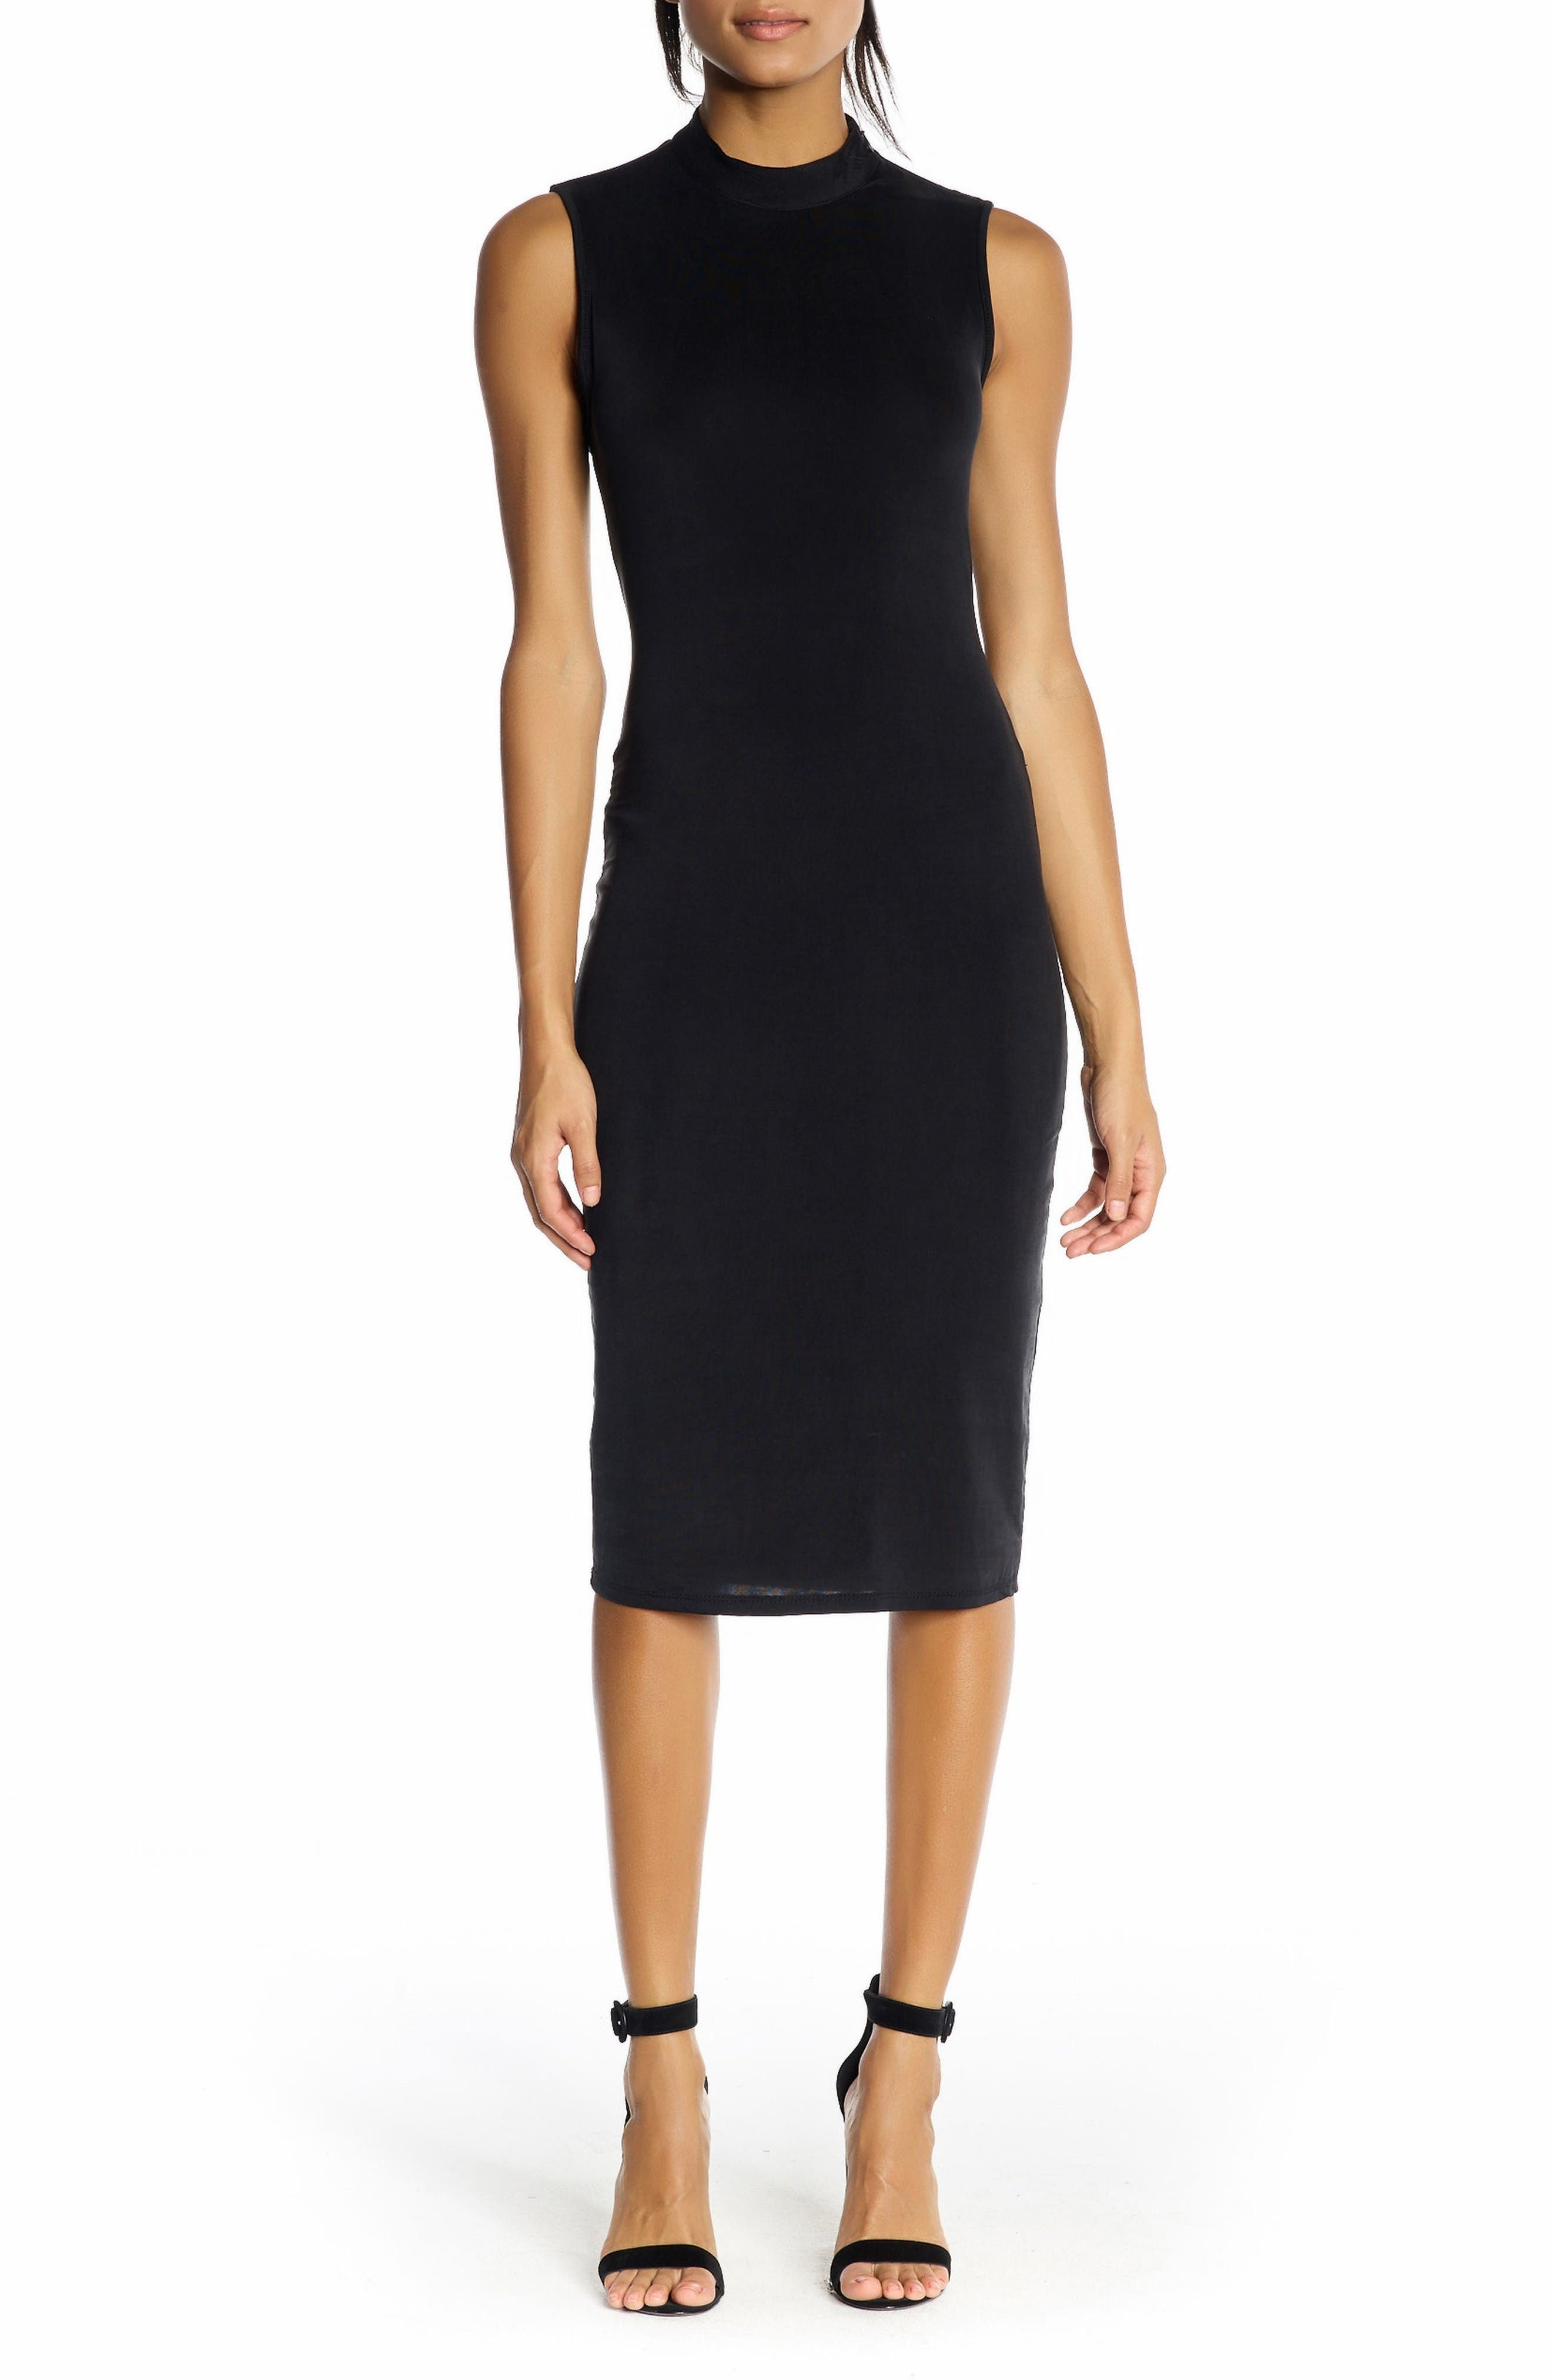 KENDALL + KYLIE Twist Back Body-Con Dress